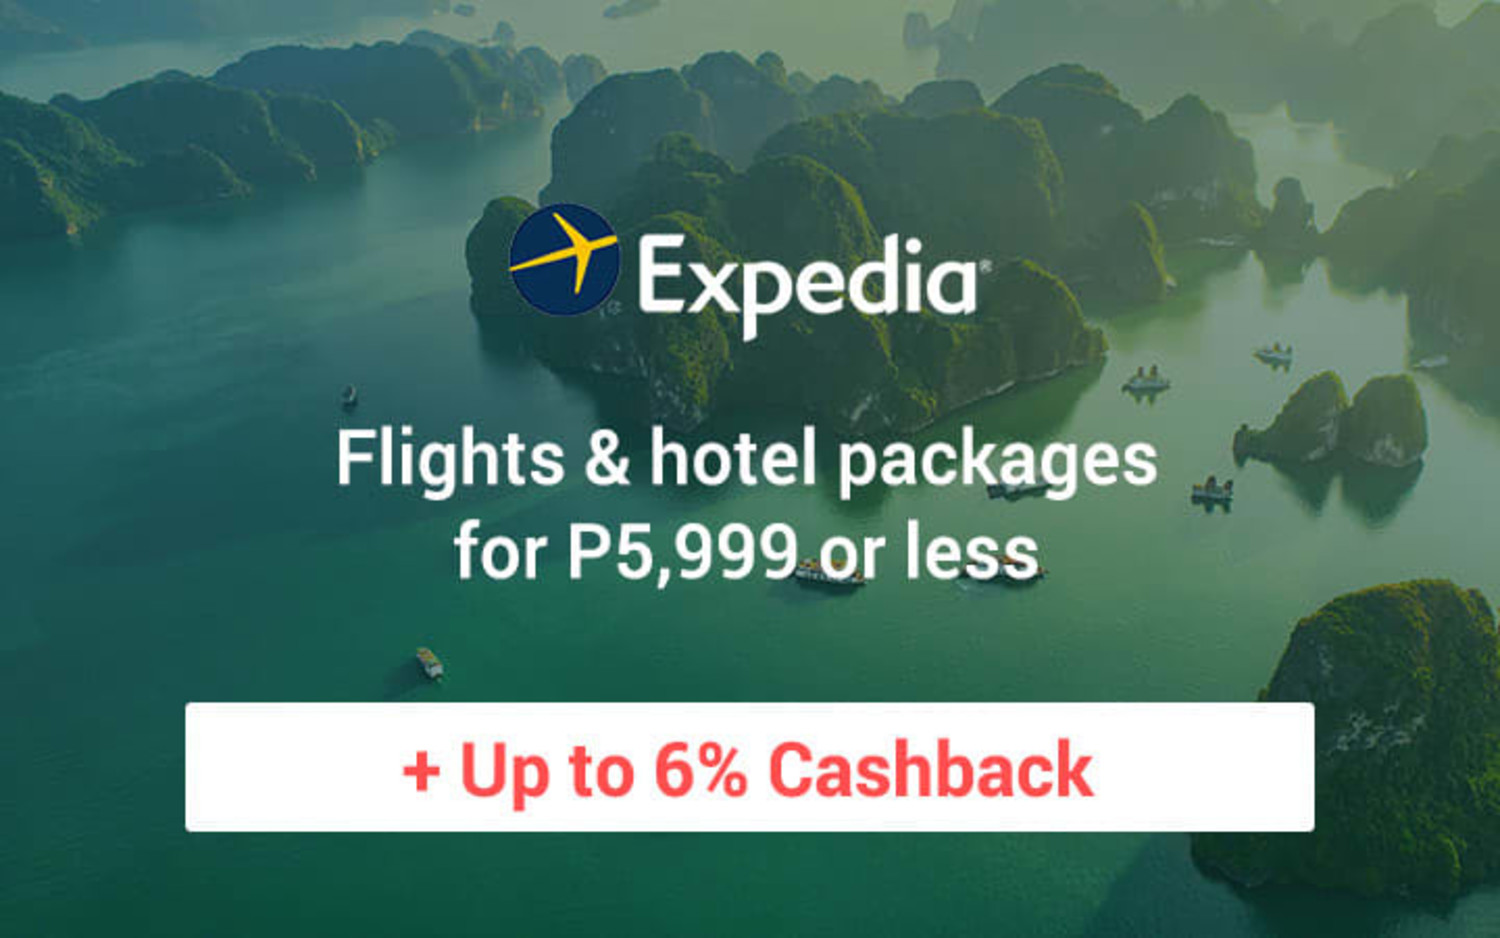 Expedia  Stay longer and save up to 35% on your accommodations + Up to 6% Cashback